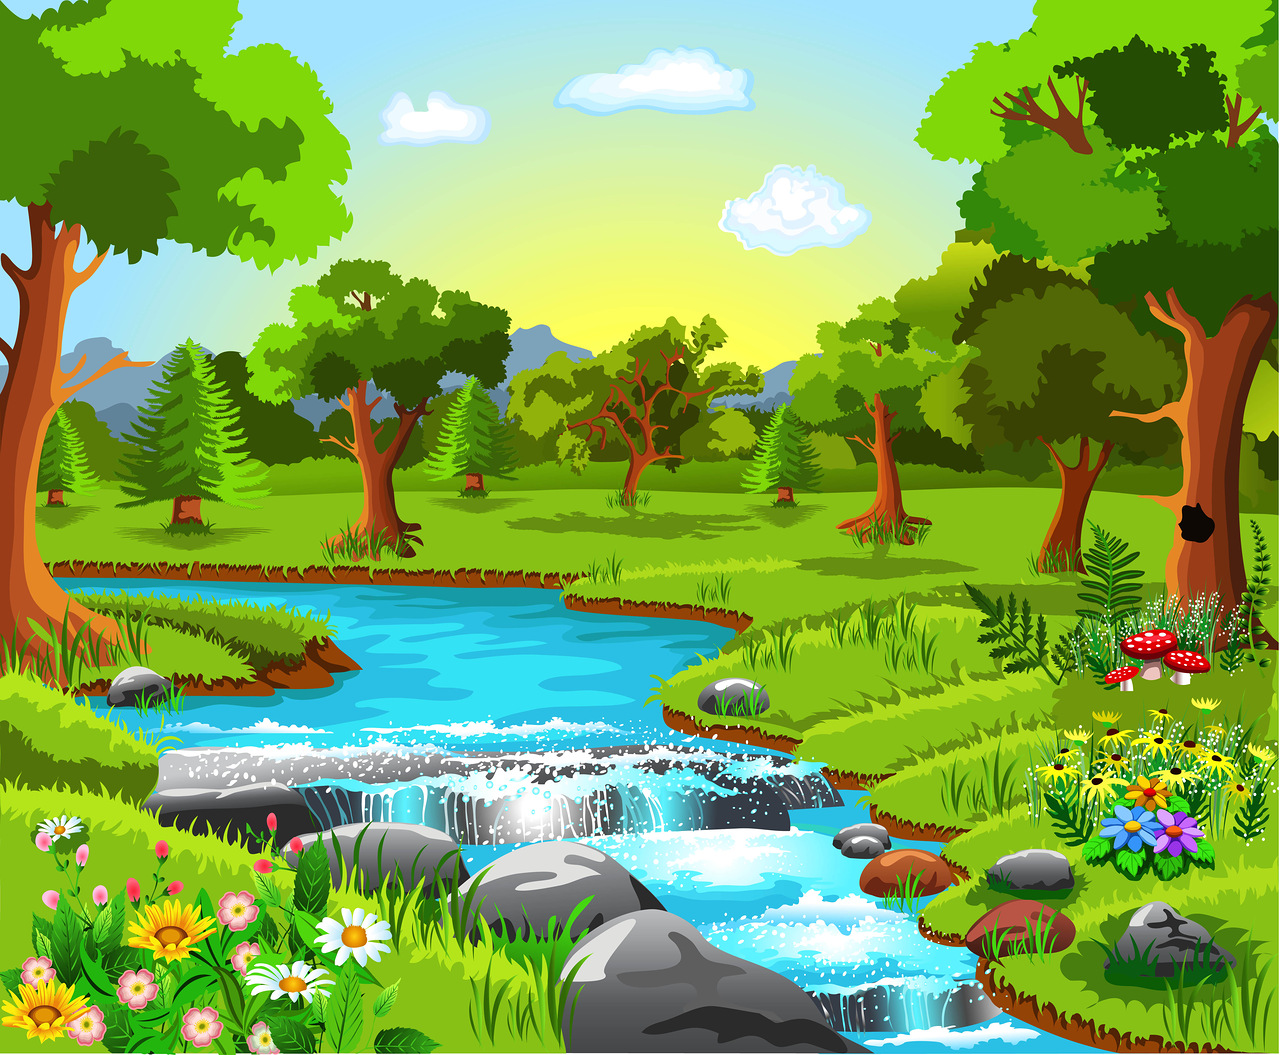 Wallpaper clipart forest Backgrounds Pin Soloveika Яндекс this